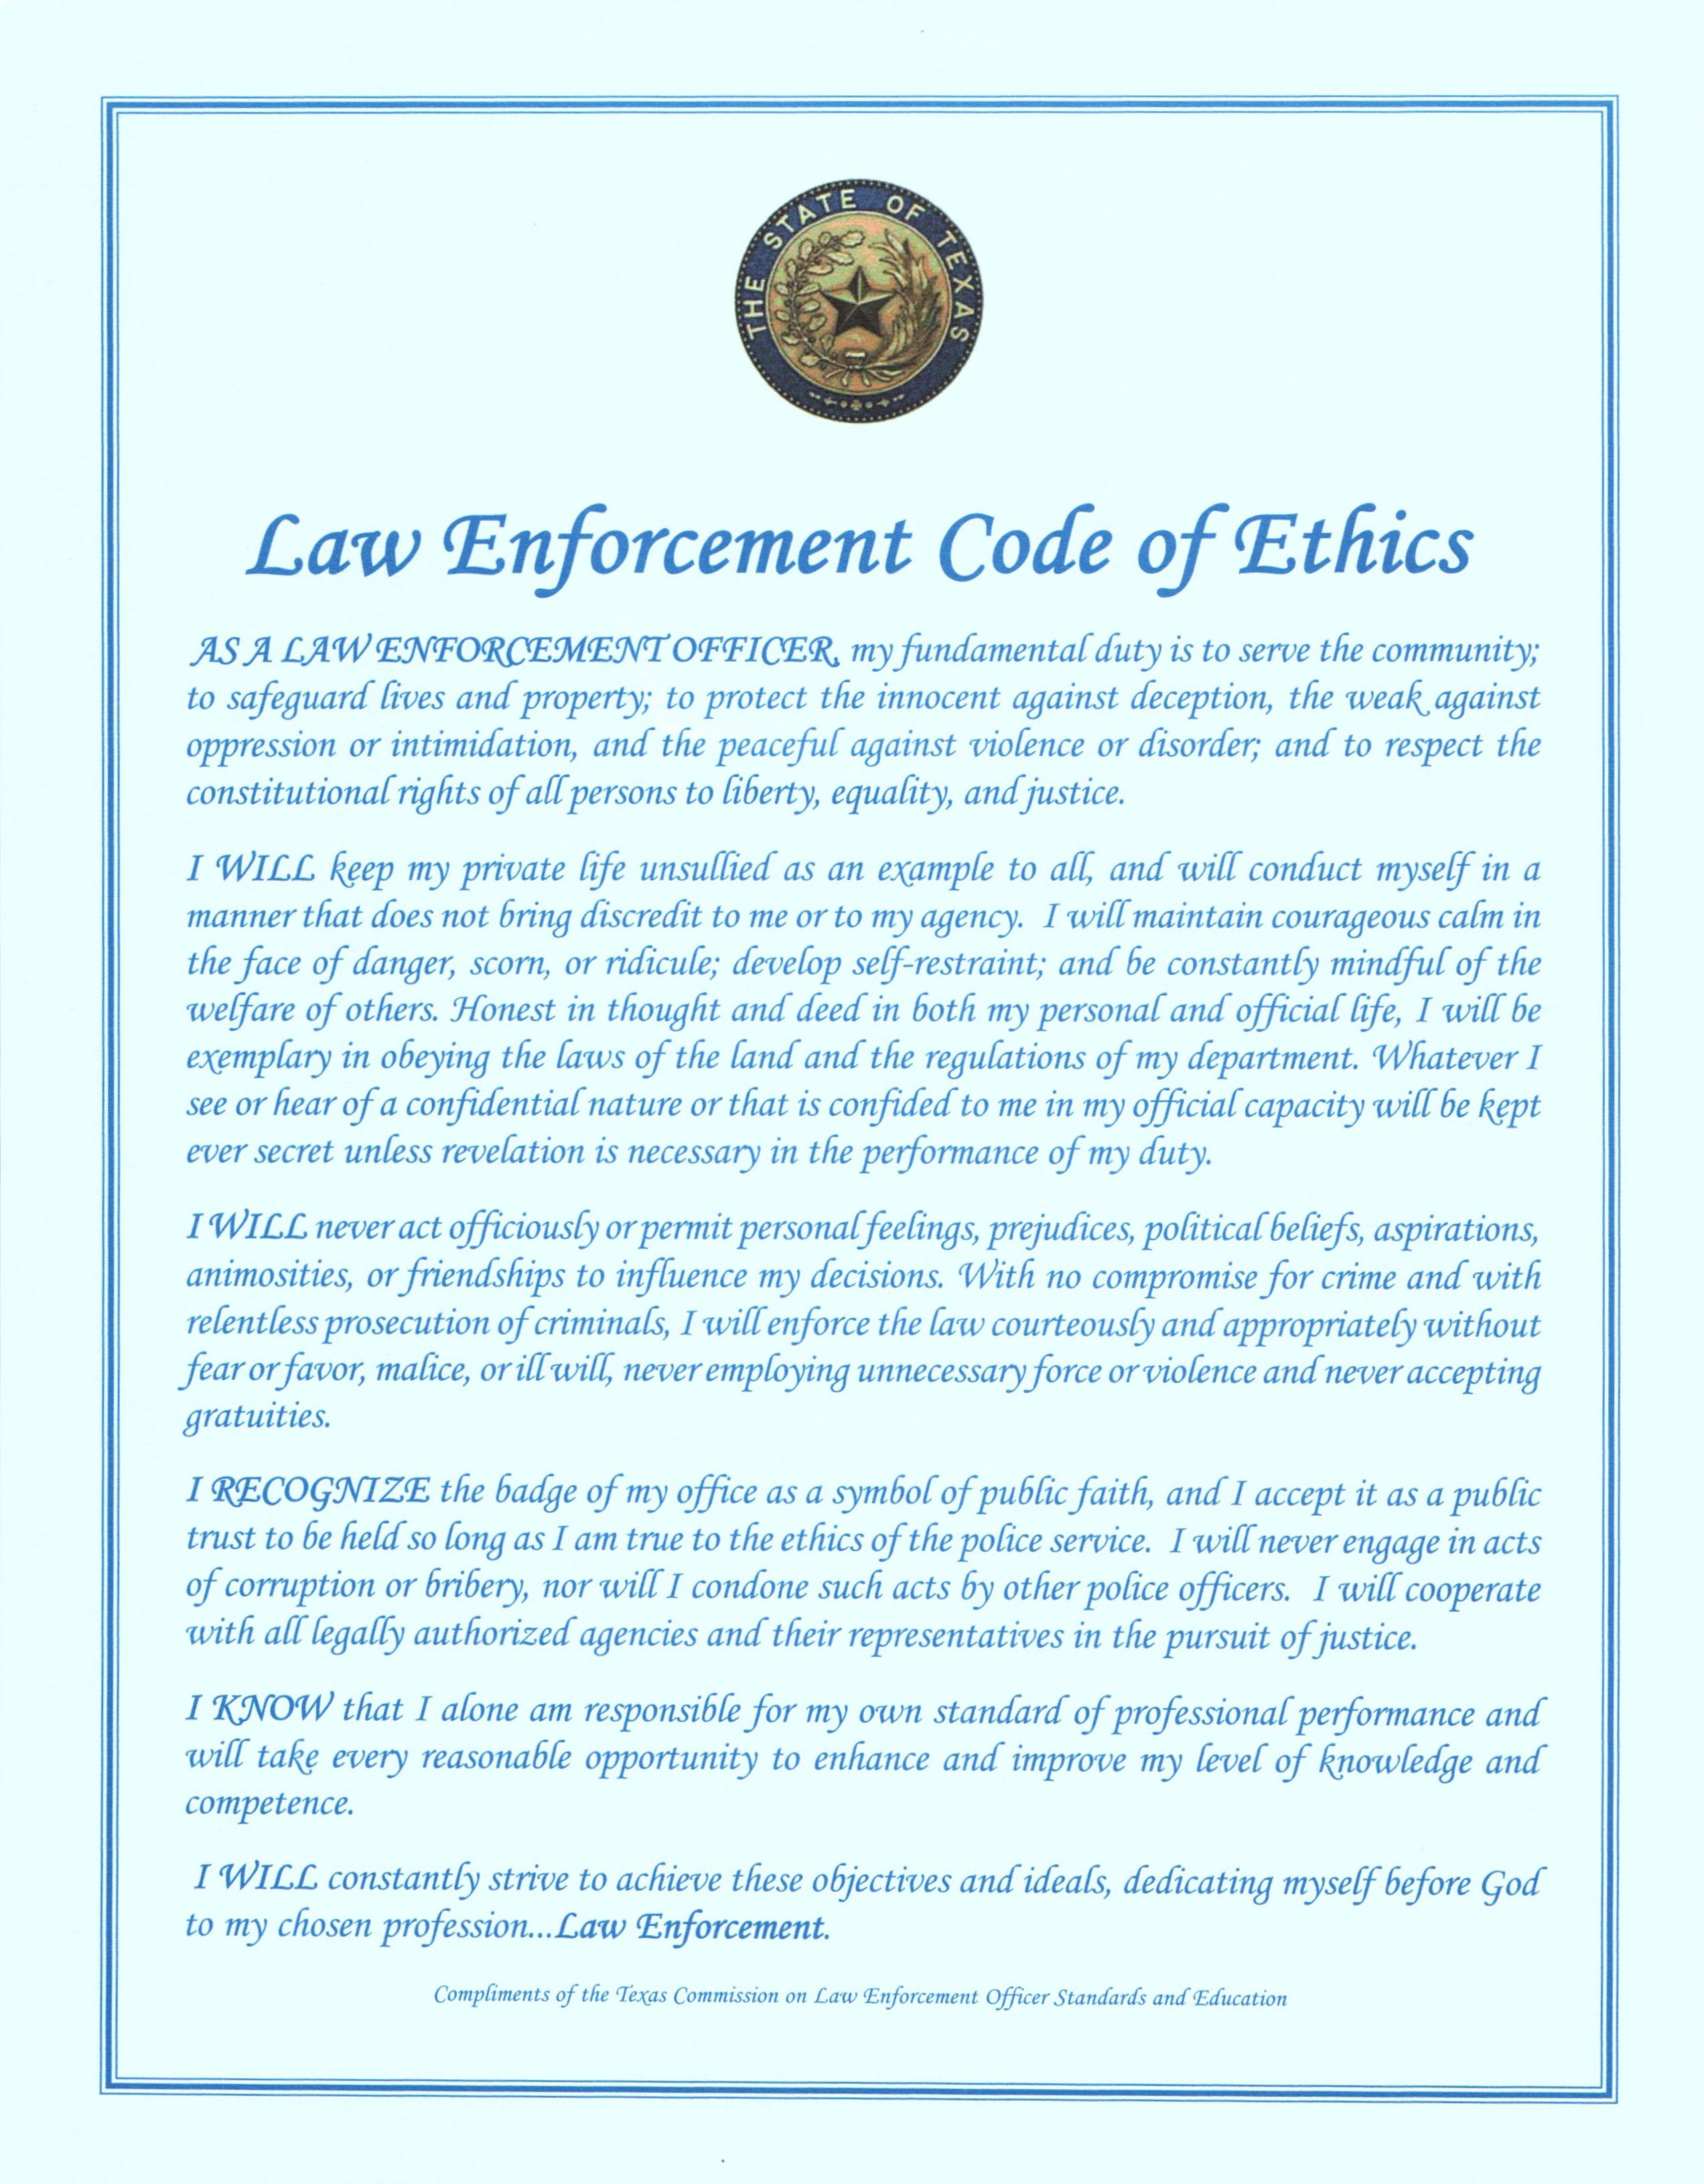 Retired Police Corporal Chris Grollnek And The Police Code Of Ethics Is Set Of Ground Rules And Ethos Is Vital To Retain Public Trust Police Code Coding Ethics